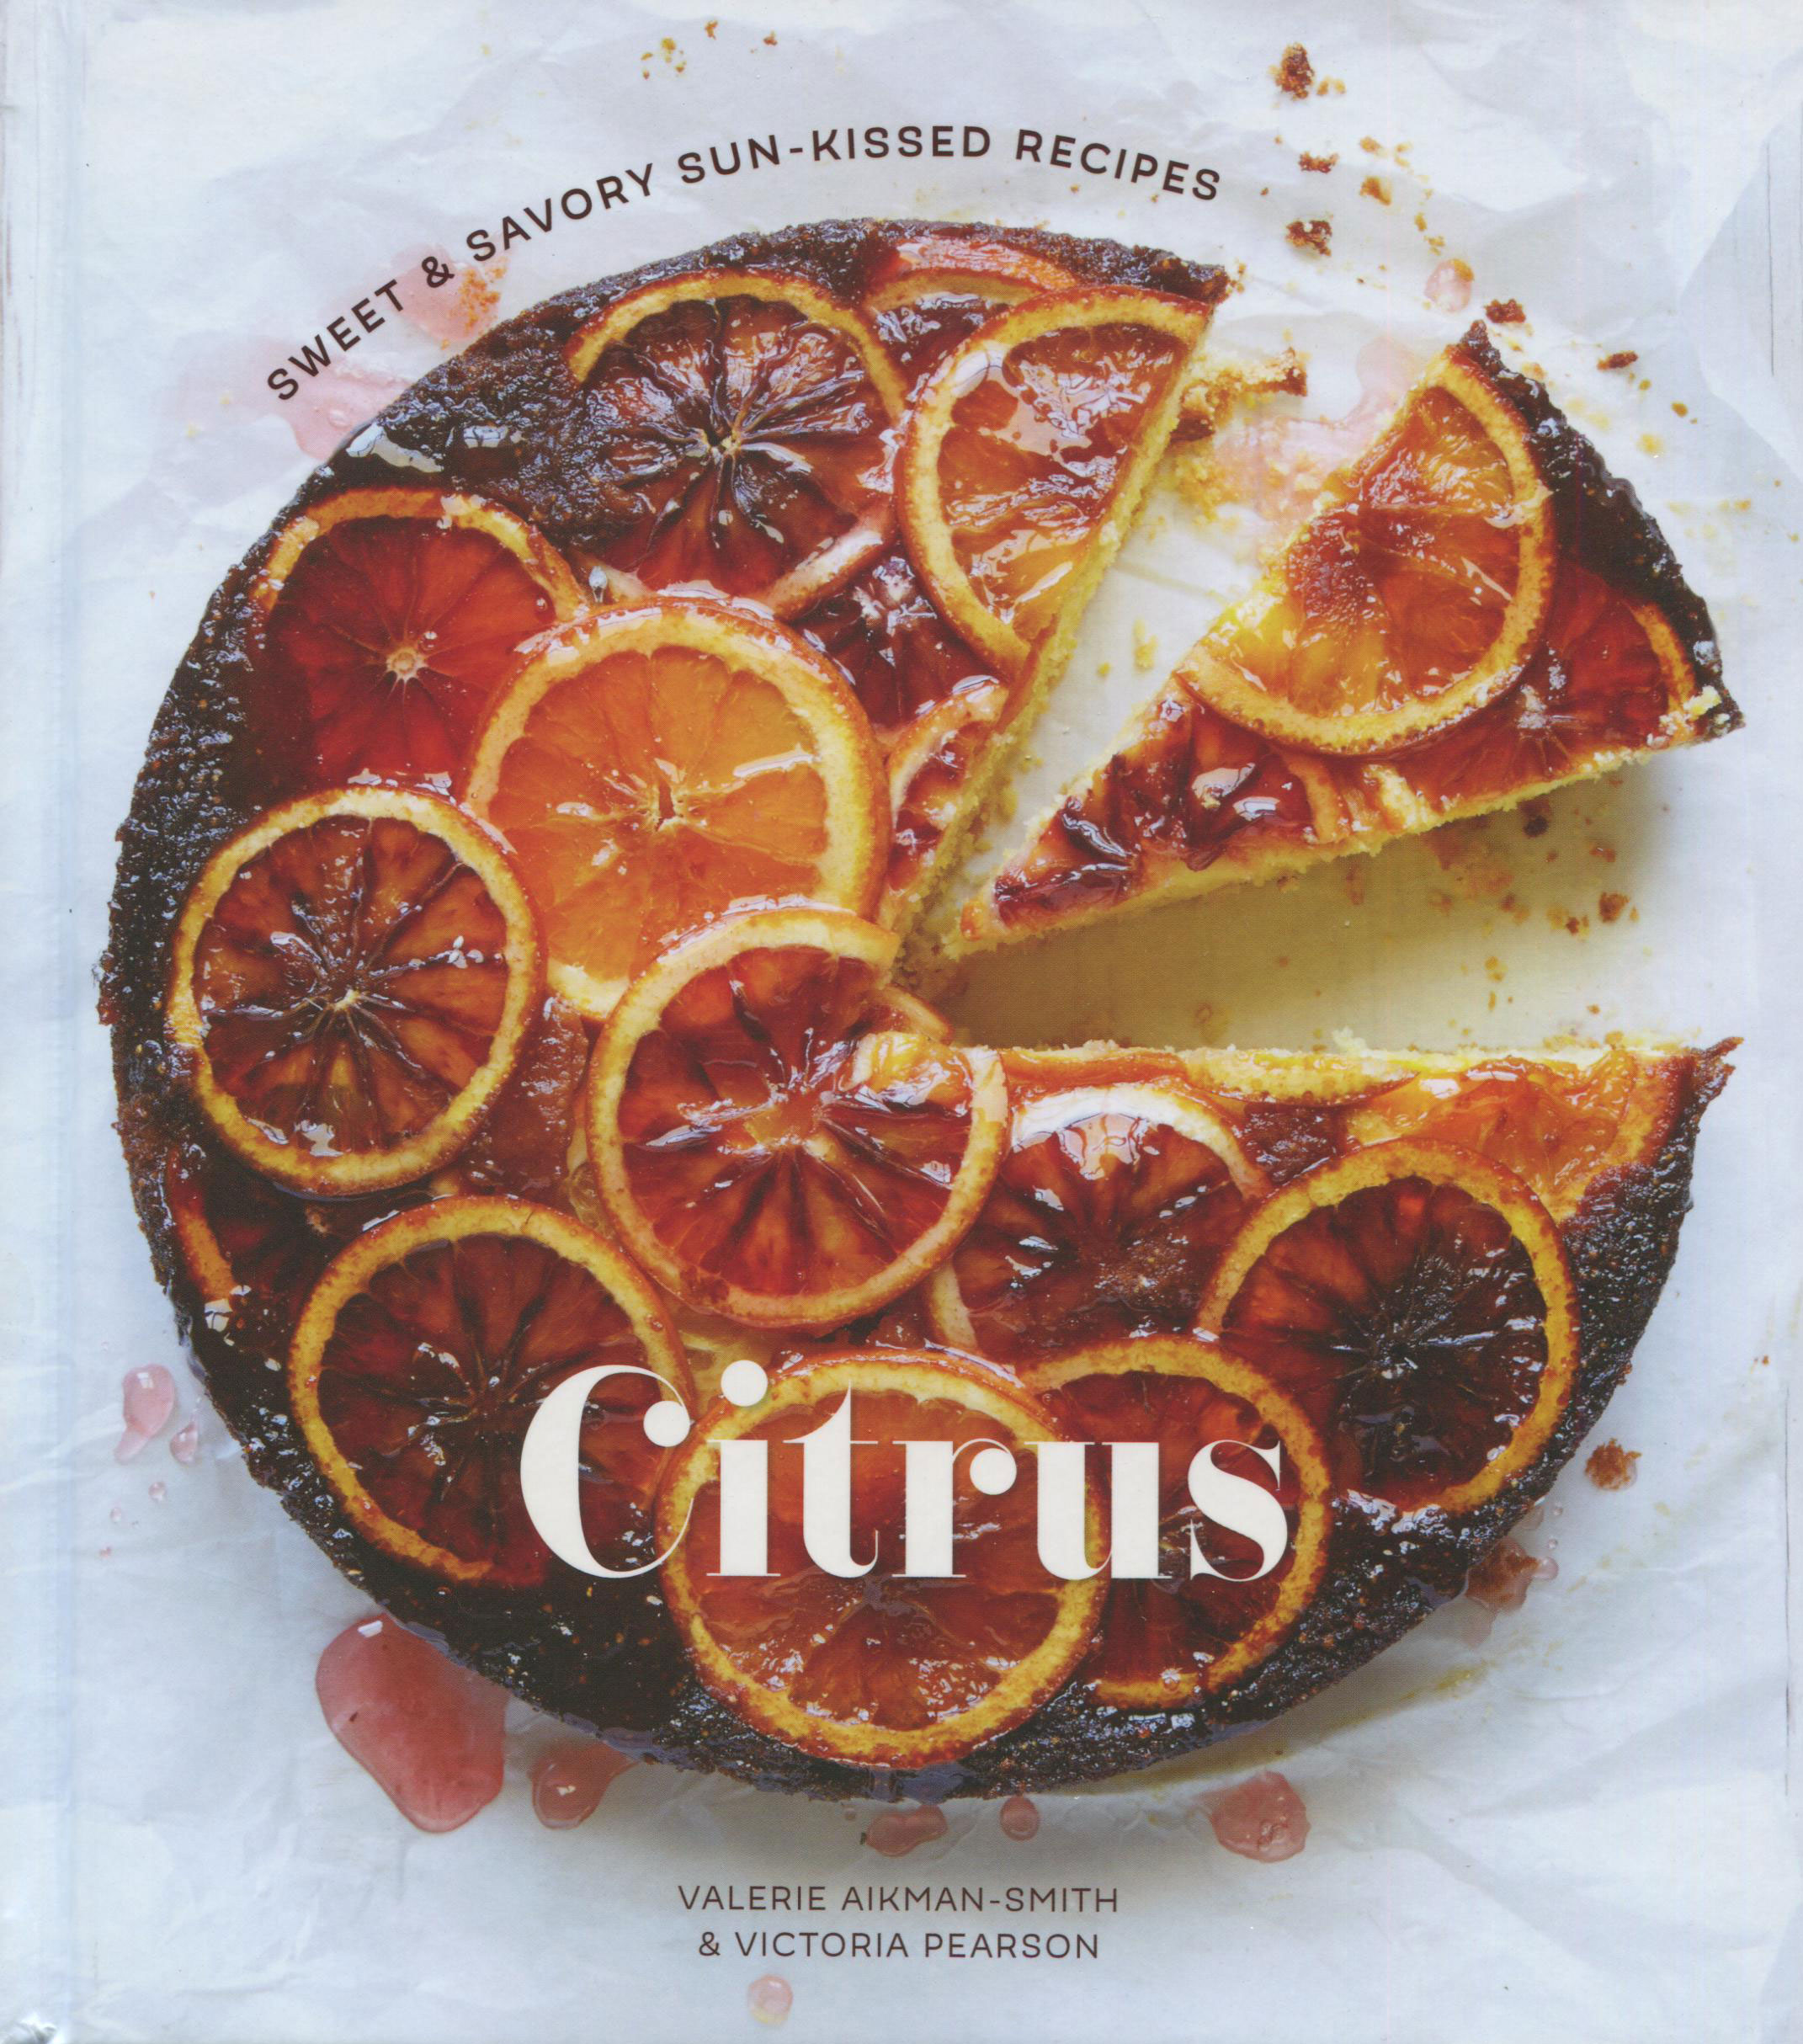 Best of Cookbook Reviews: Citrus by Valerie Aikman-Smith and Victoria Pearson